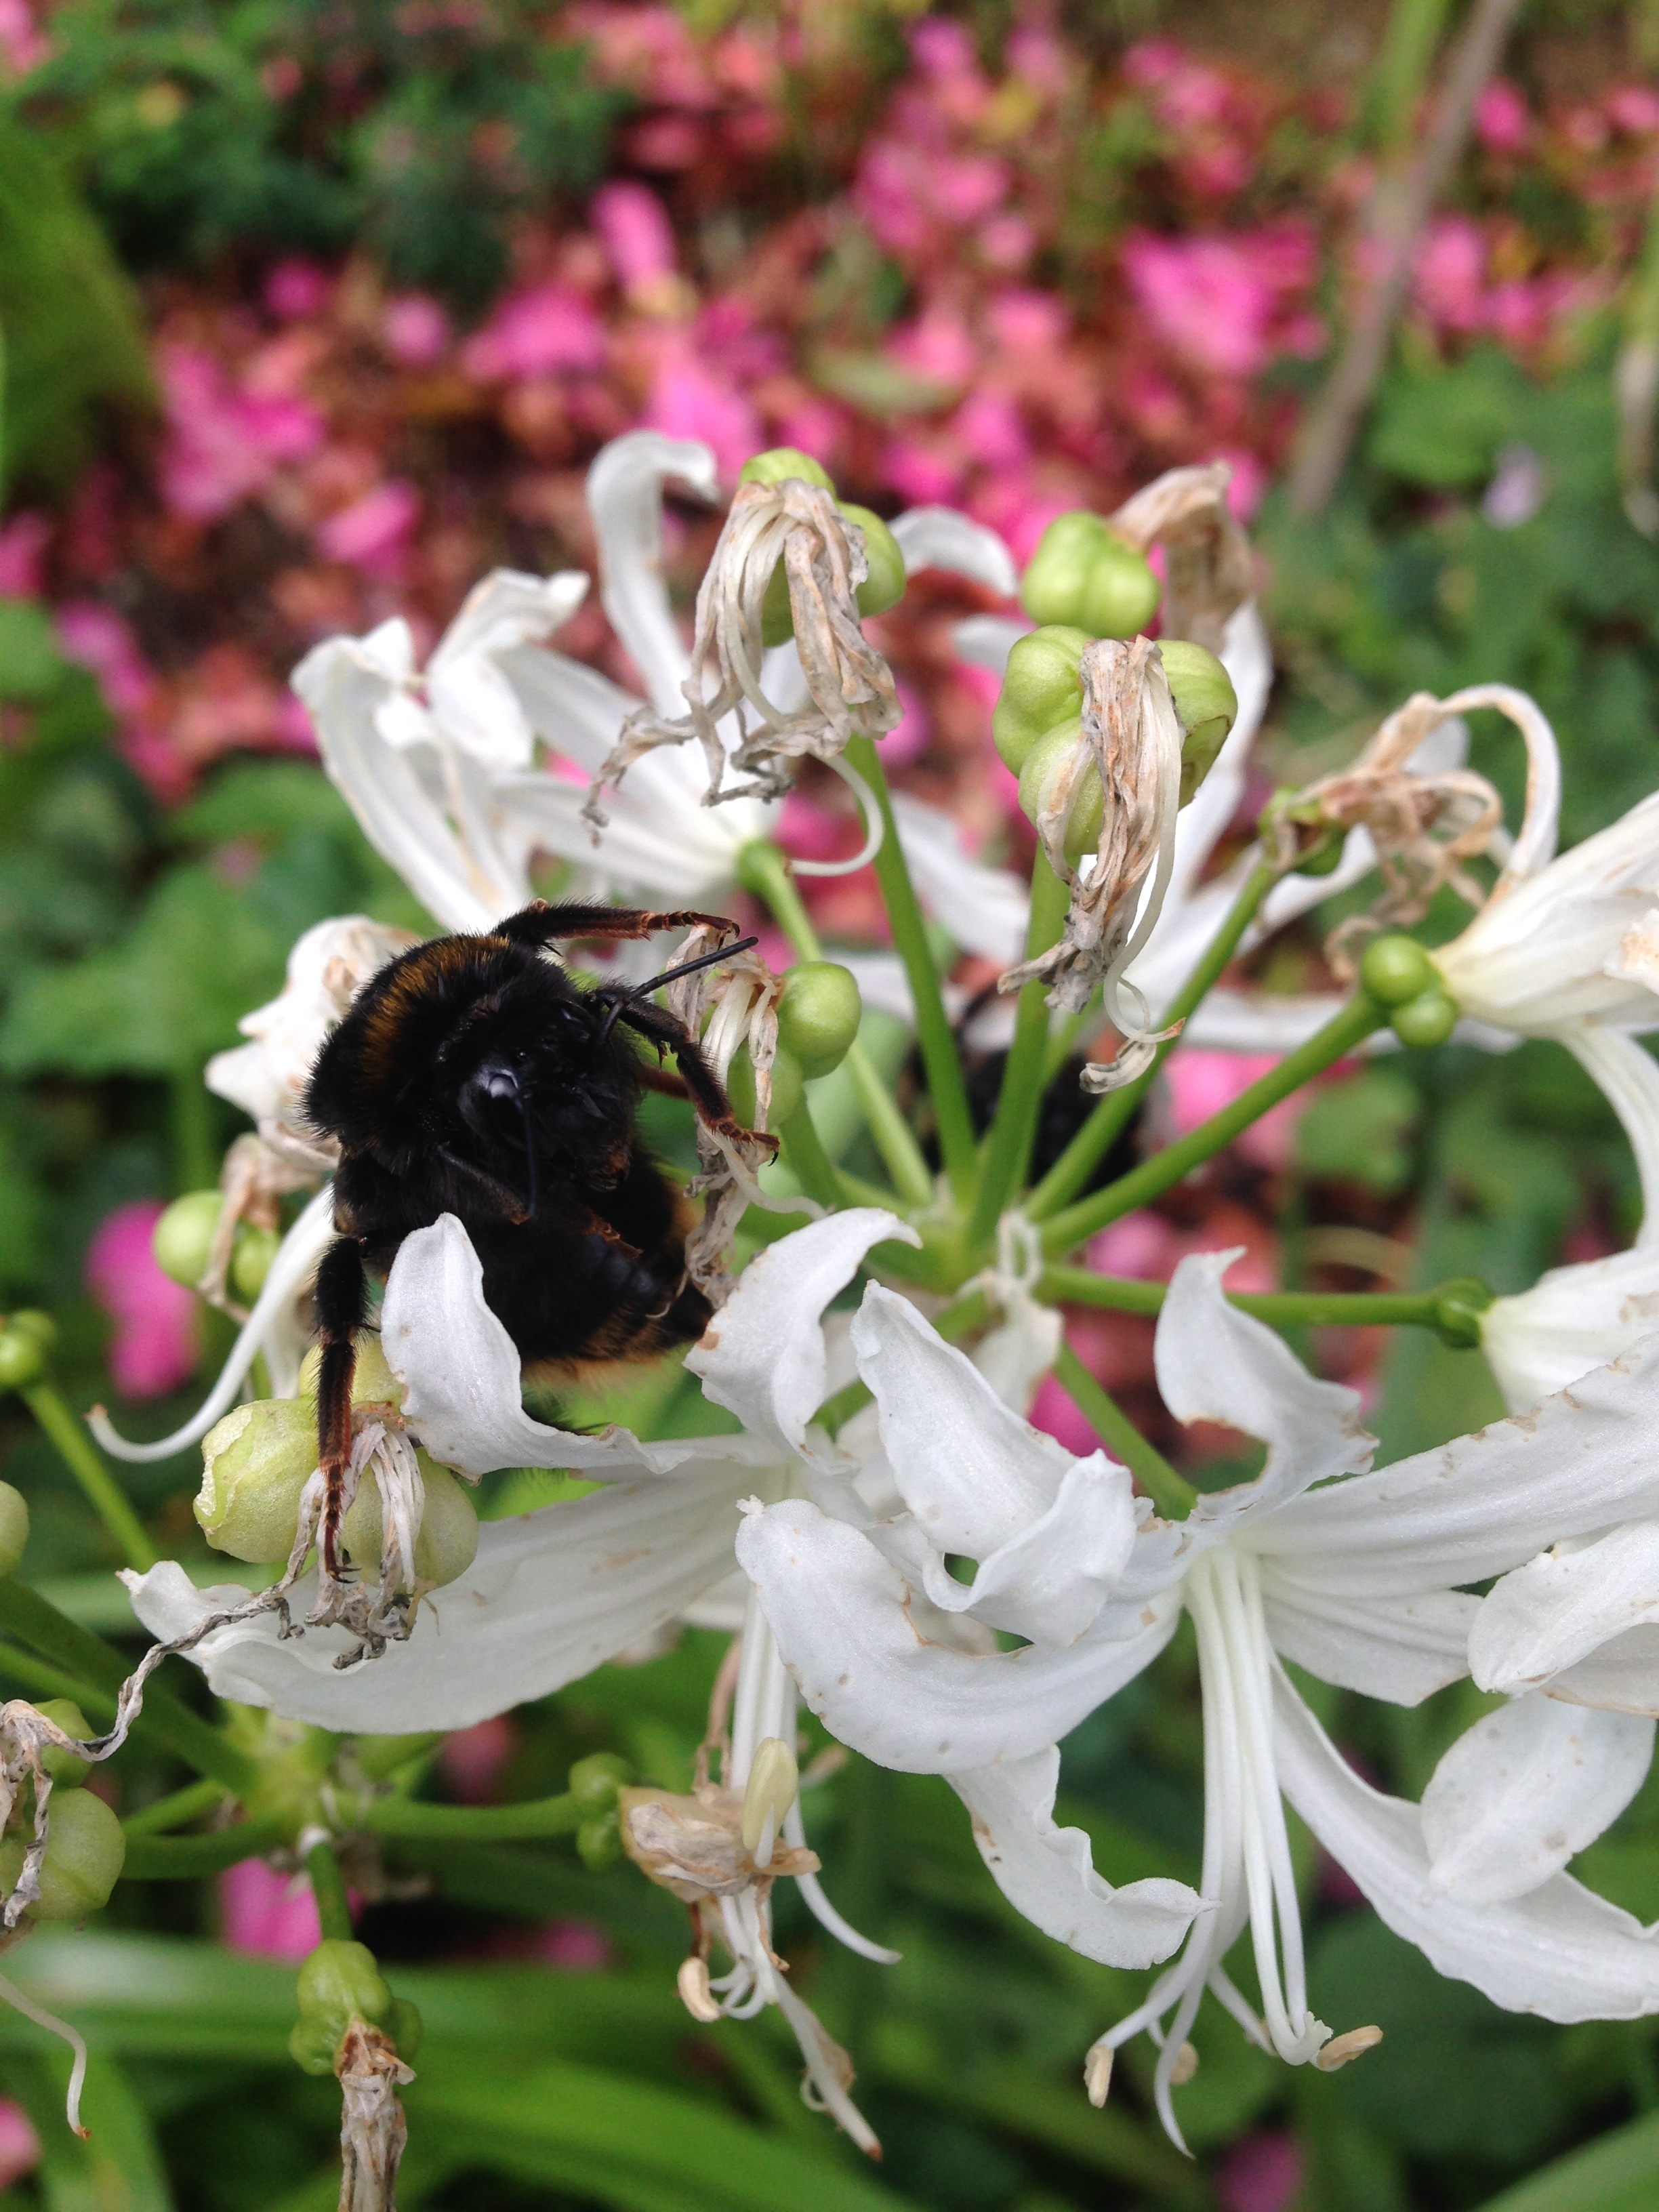 We're the bees knees. - We don't use pesticides, fungicides, or anything that is likely to poison plants, bugs or animals. If you have an insect problem, we deal with it at the source directly, removing places they may like to hide, altering garden beds and sustaining plants in a way that helps them resist disease and the odd nibble from a snail.We control fungal issues with careful planting and hygienic garden management techniques.We know a lot about mouse, stoat, ferret and rat control, and can advise on the best traps, but we don't maintain currently offer trap maintenance as a part of our service.We pull weeds the proper way, removing all of them at their root, deadheading flowers so nothing spreads, and working long and hard at controlling convolvulous, agapanthus, wandering dew and similar. Regular, mindful weeding is better than any spray, any day- both for the look of your garden, the control of the weed, and the environment. We don't compromise.